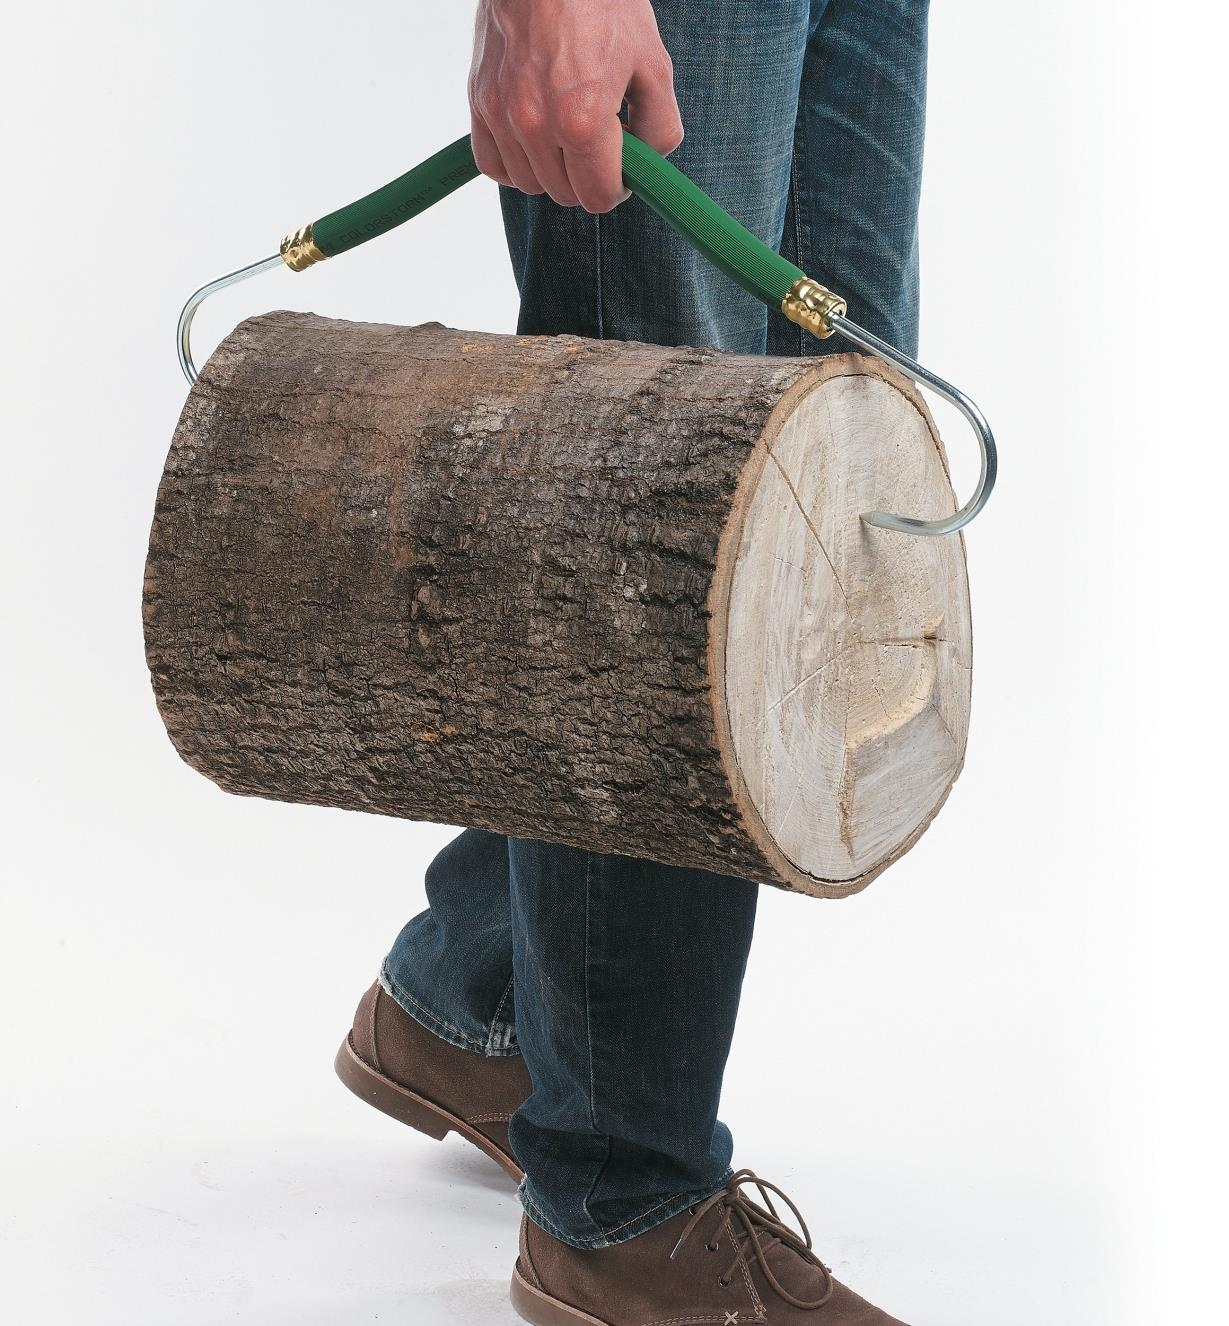 A log being carried with the Firewood Gripper